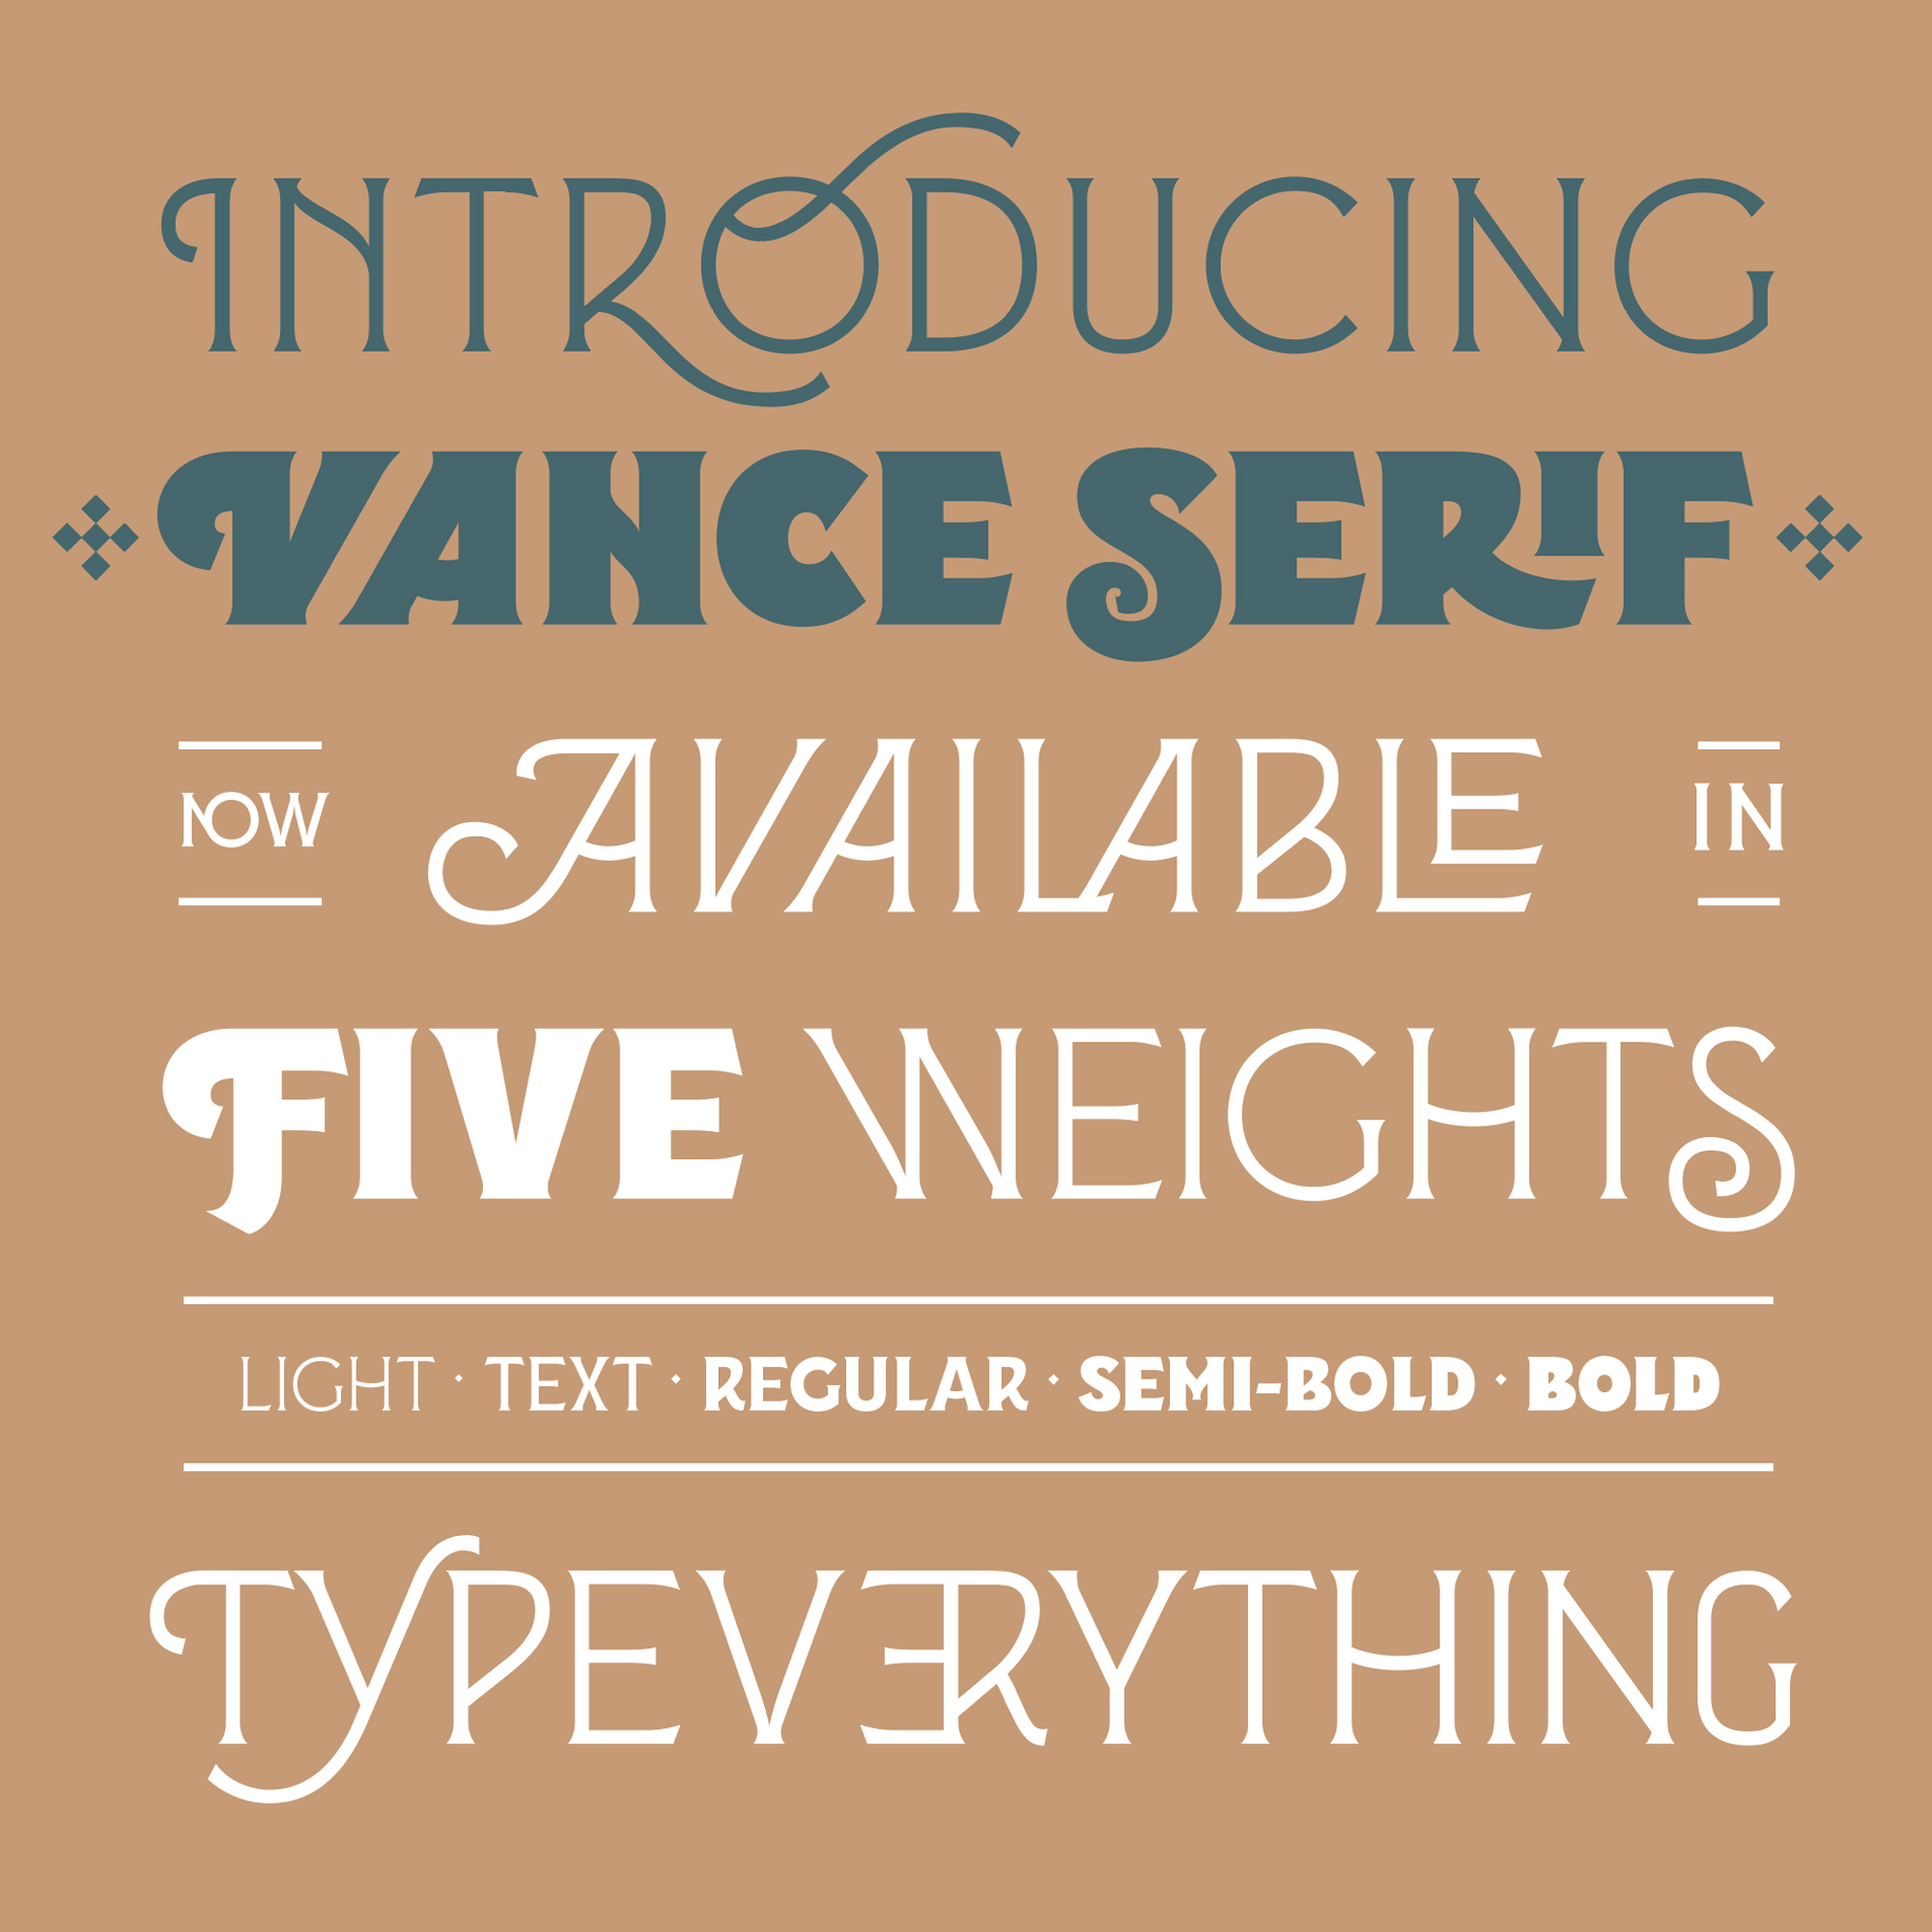 Vance Serif, a new typeface designed by Kevin Cantrell. Available on www.typeverything.com